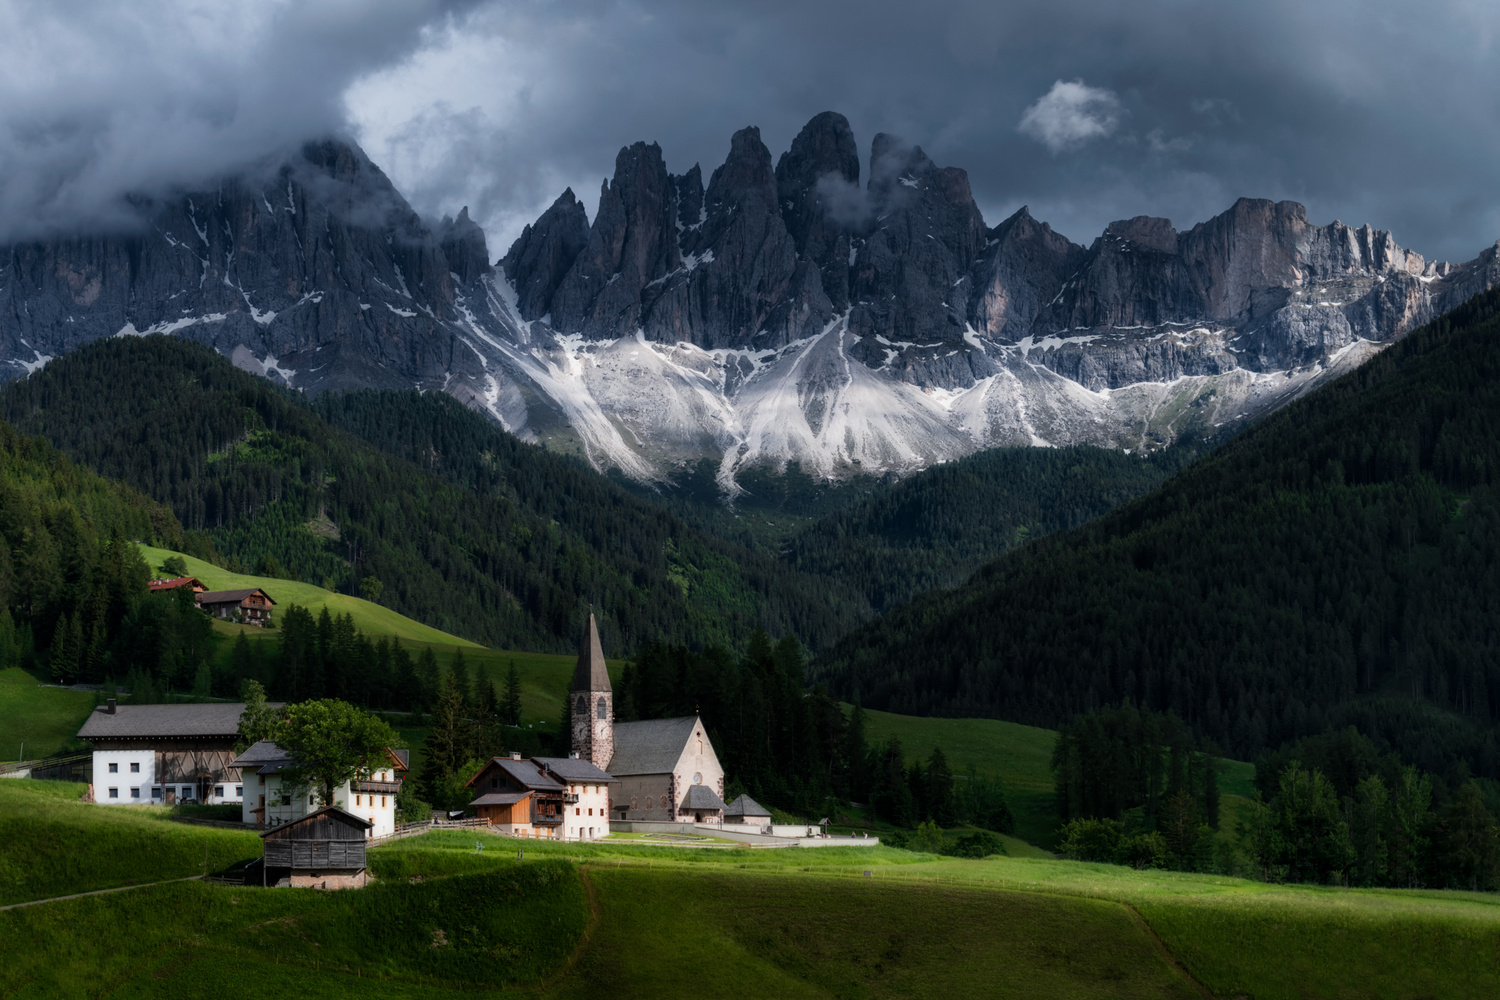 Santa Maddalena and the Odle Mountain Group, Italy by Nico Trinkhaus